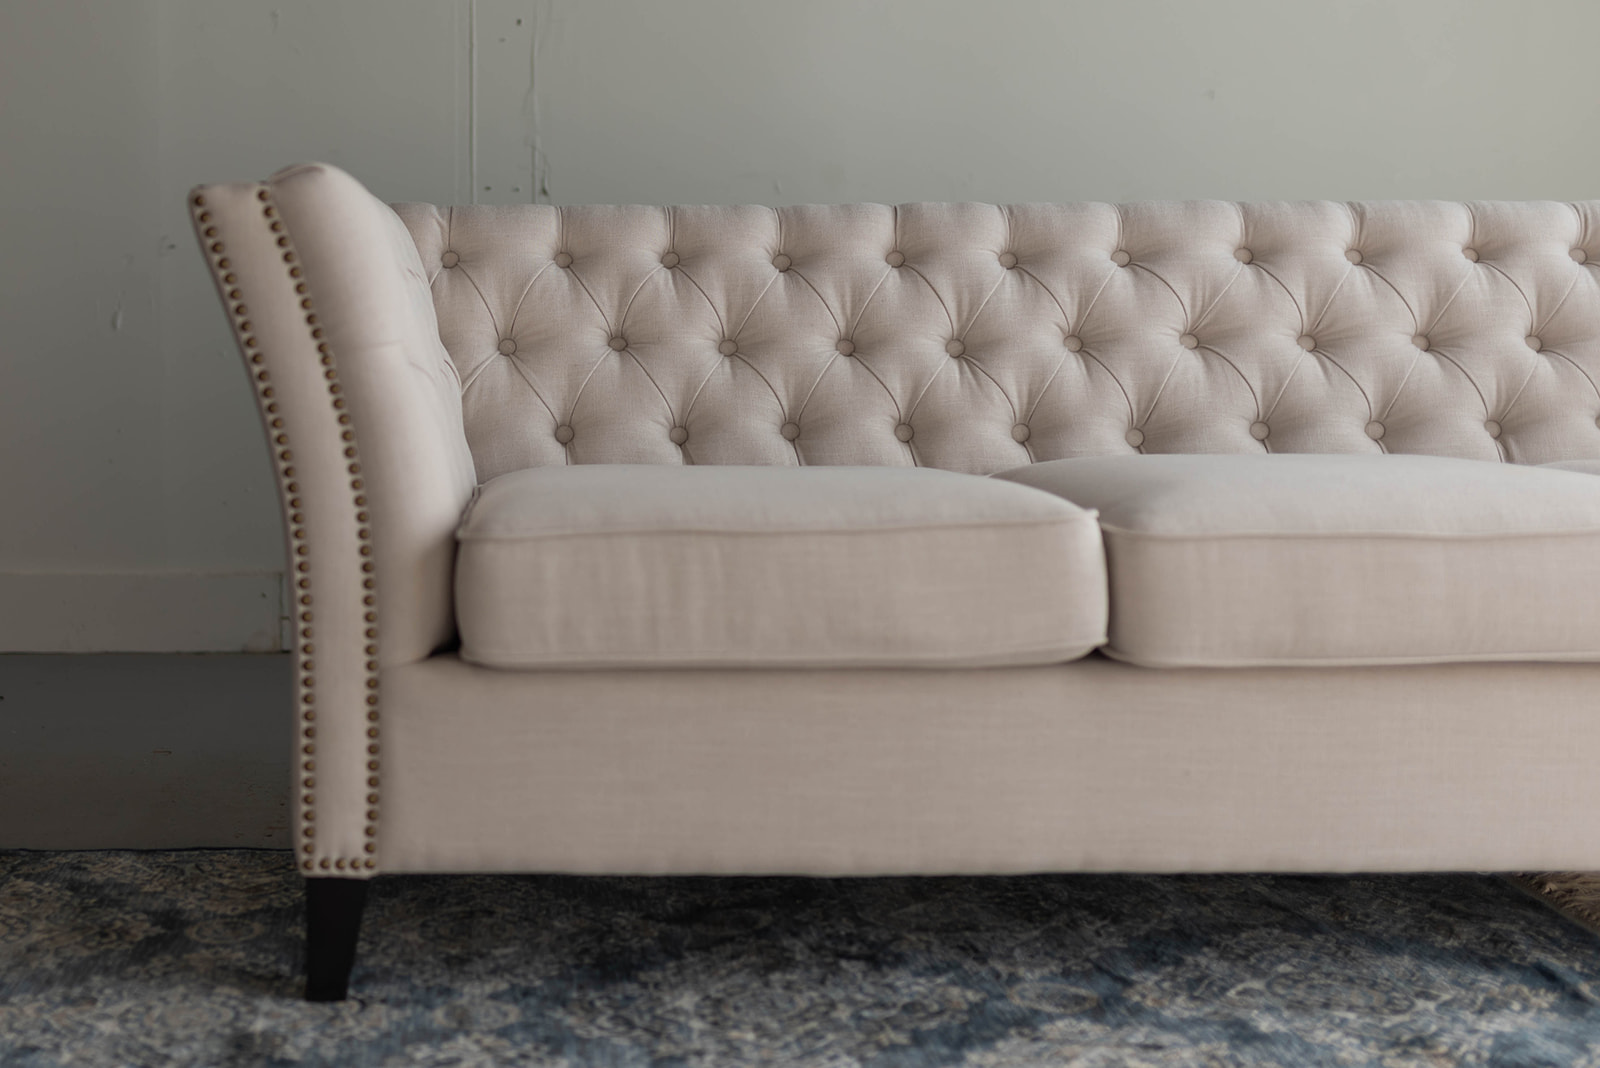 Linen tufted sofa with nail heads